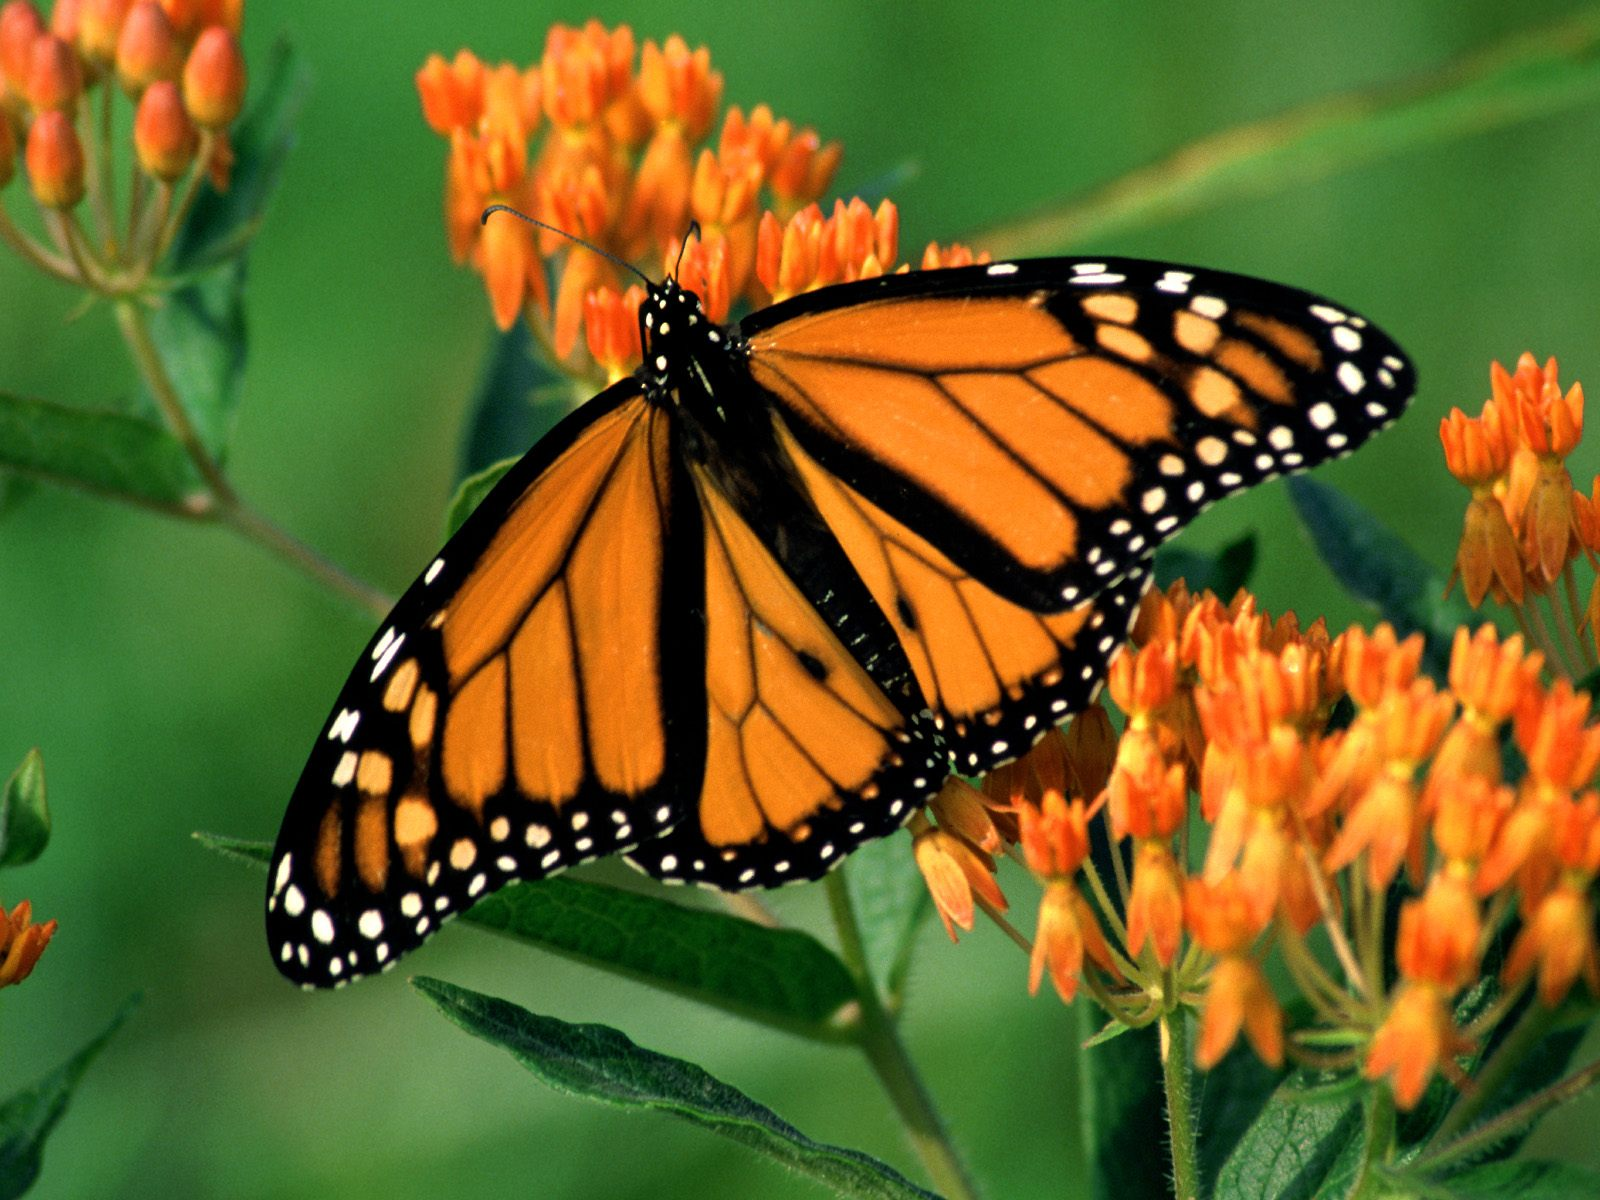 monarch butterfly wallpaper with the title Monarch butterfly wallpaper 1600x1200